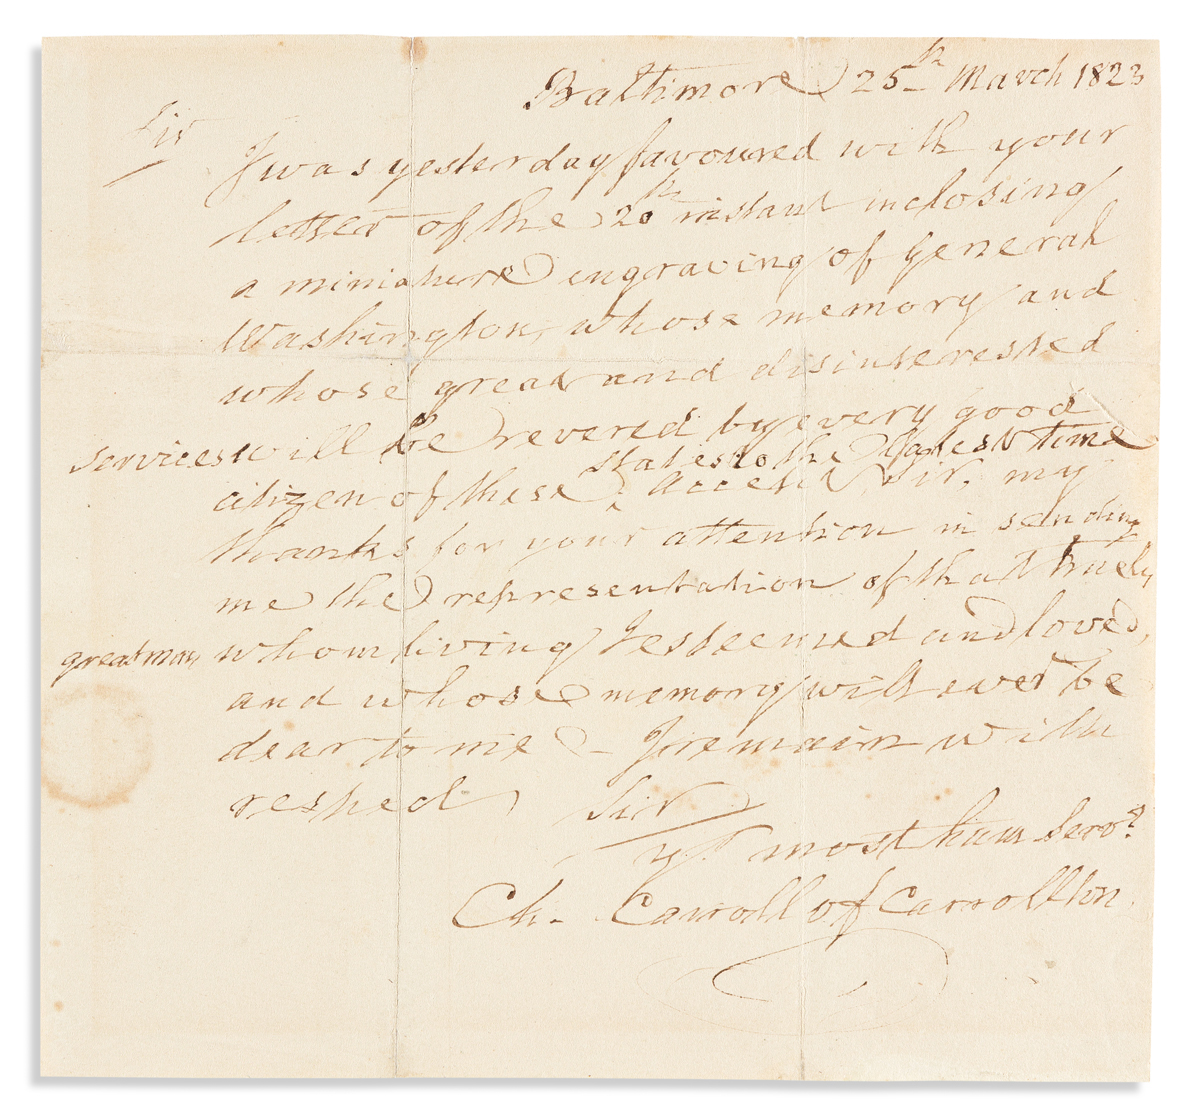 """CARROLL, CHARLES. Autograph Letter Signed, """"Ch. Carroll of Carrollton,"""" to """"Sir,"""""""